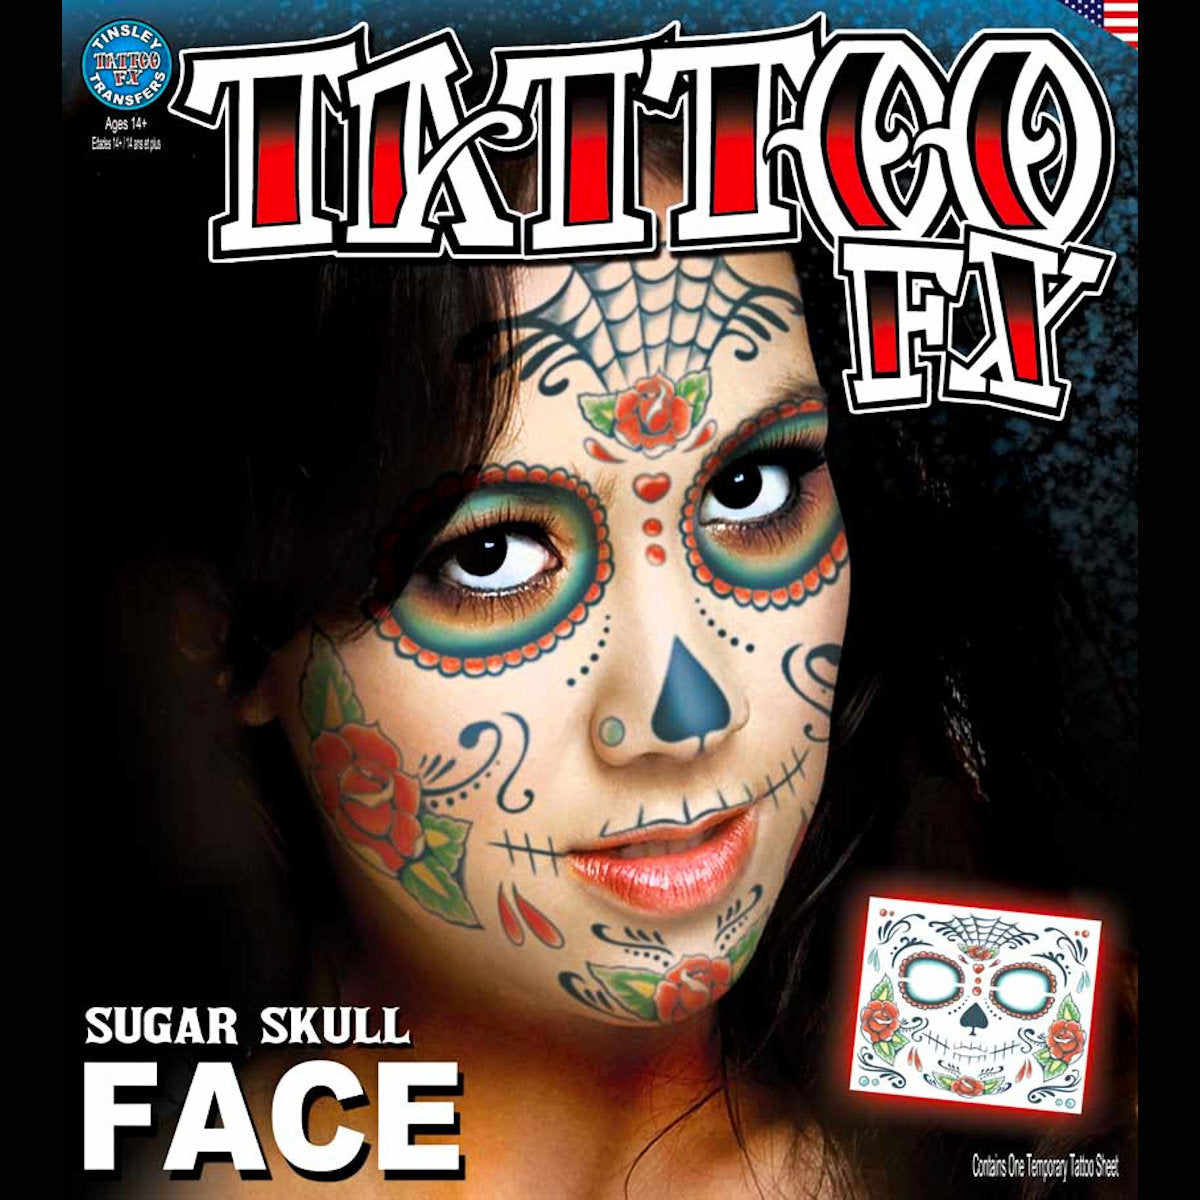 DOD Sugar Skull Full Face Temporary Tattoo Tinsley Halloween Special FX Make up